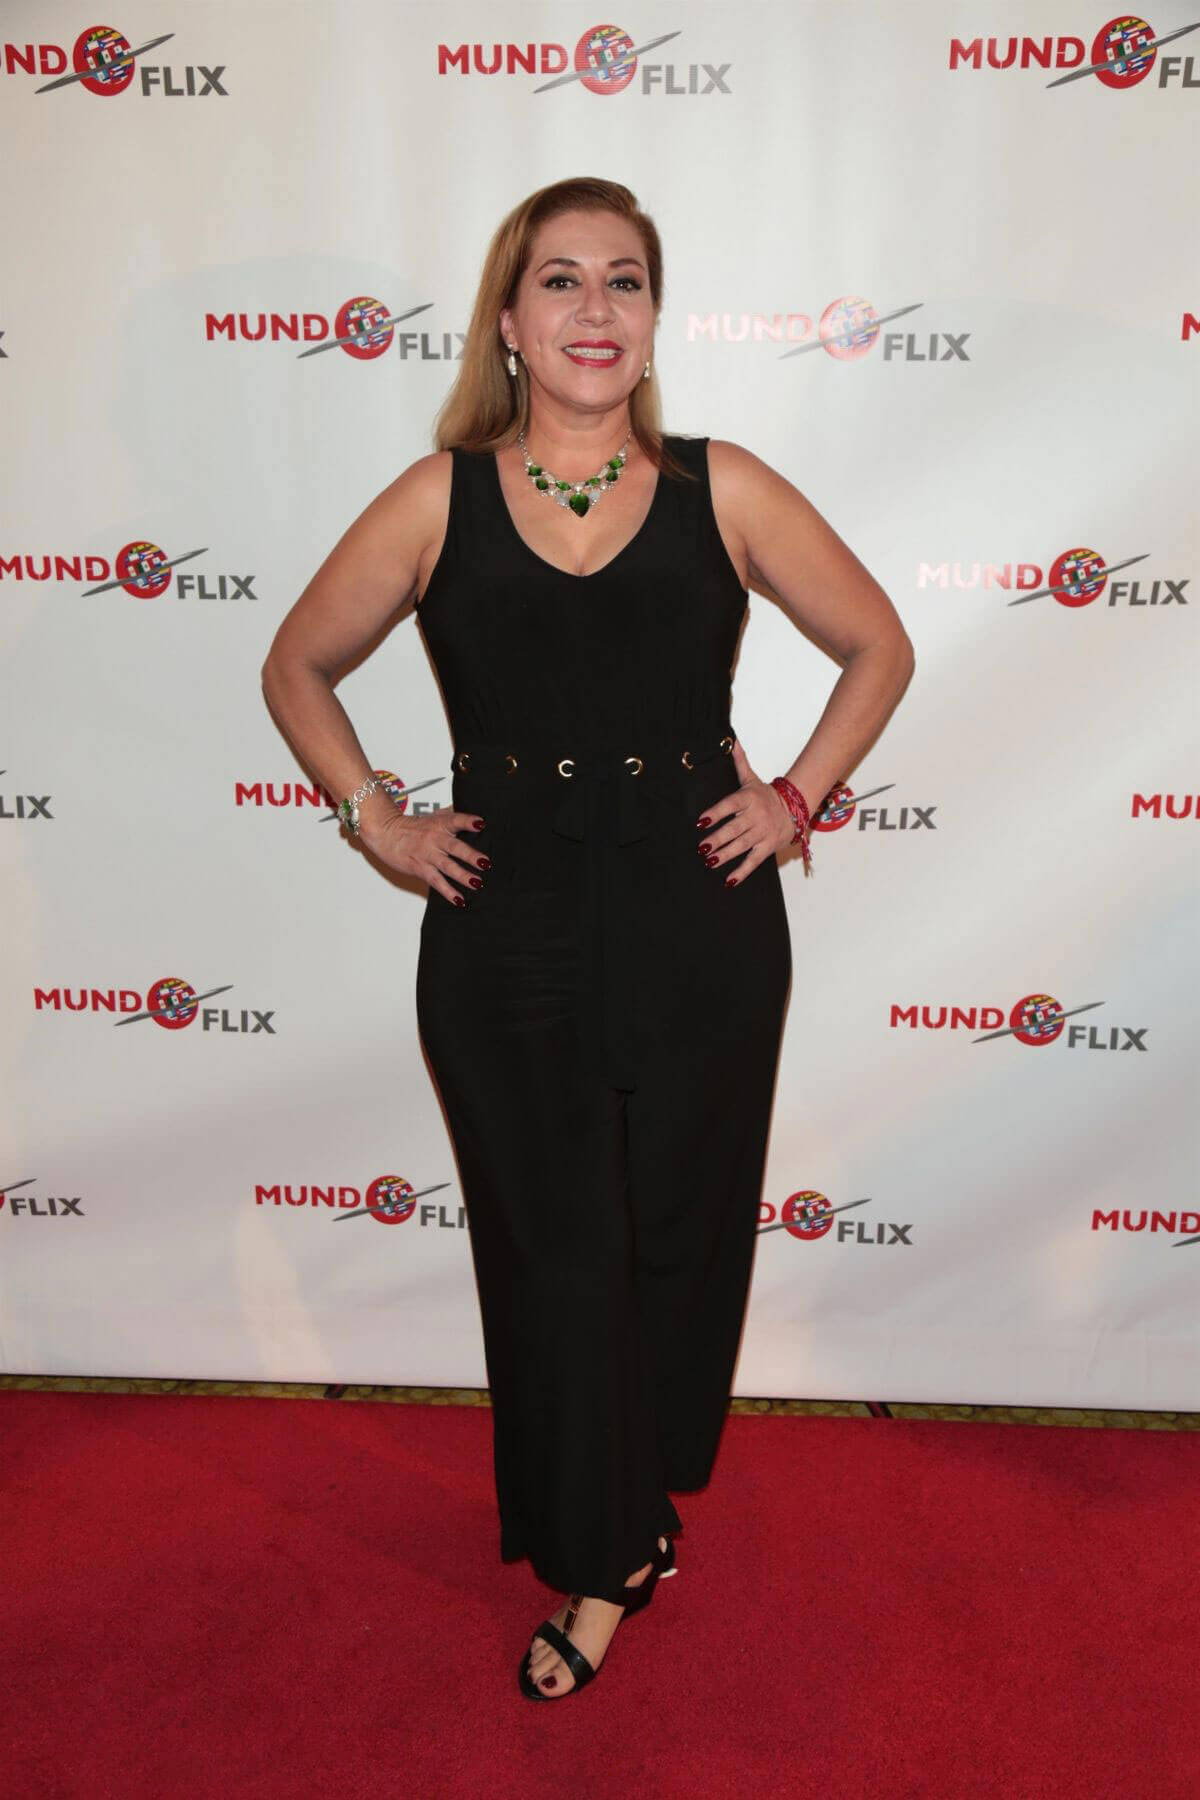 Ana Salazar Stils at MundoFlix Launch Party in Studio City